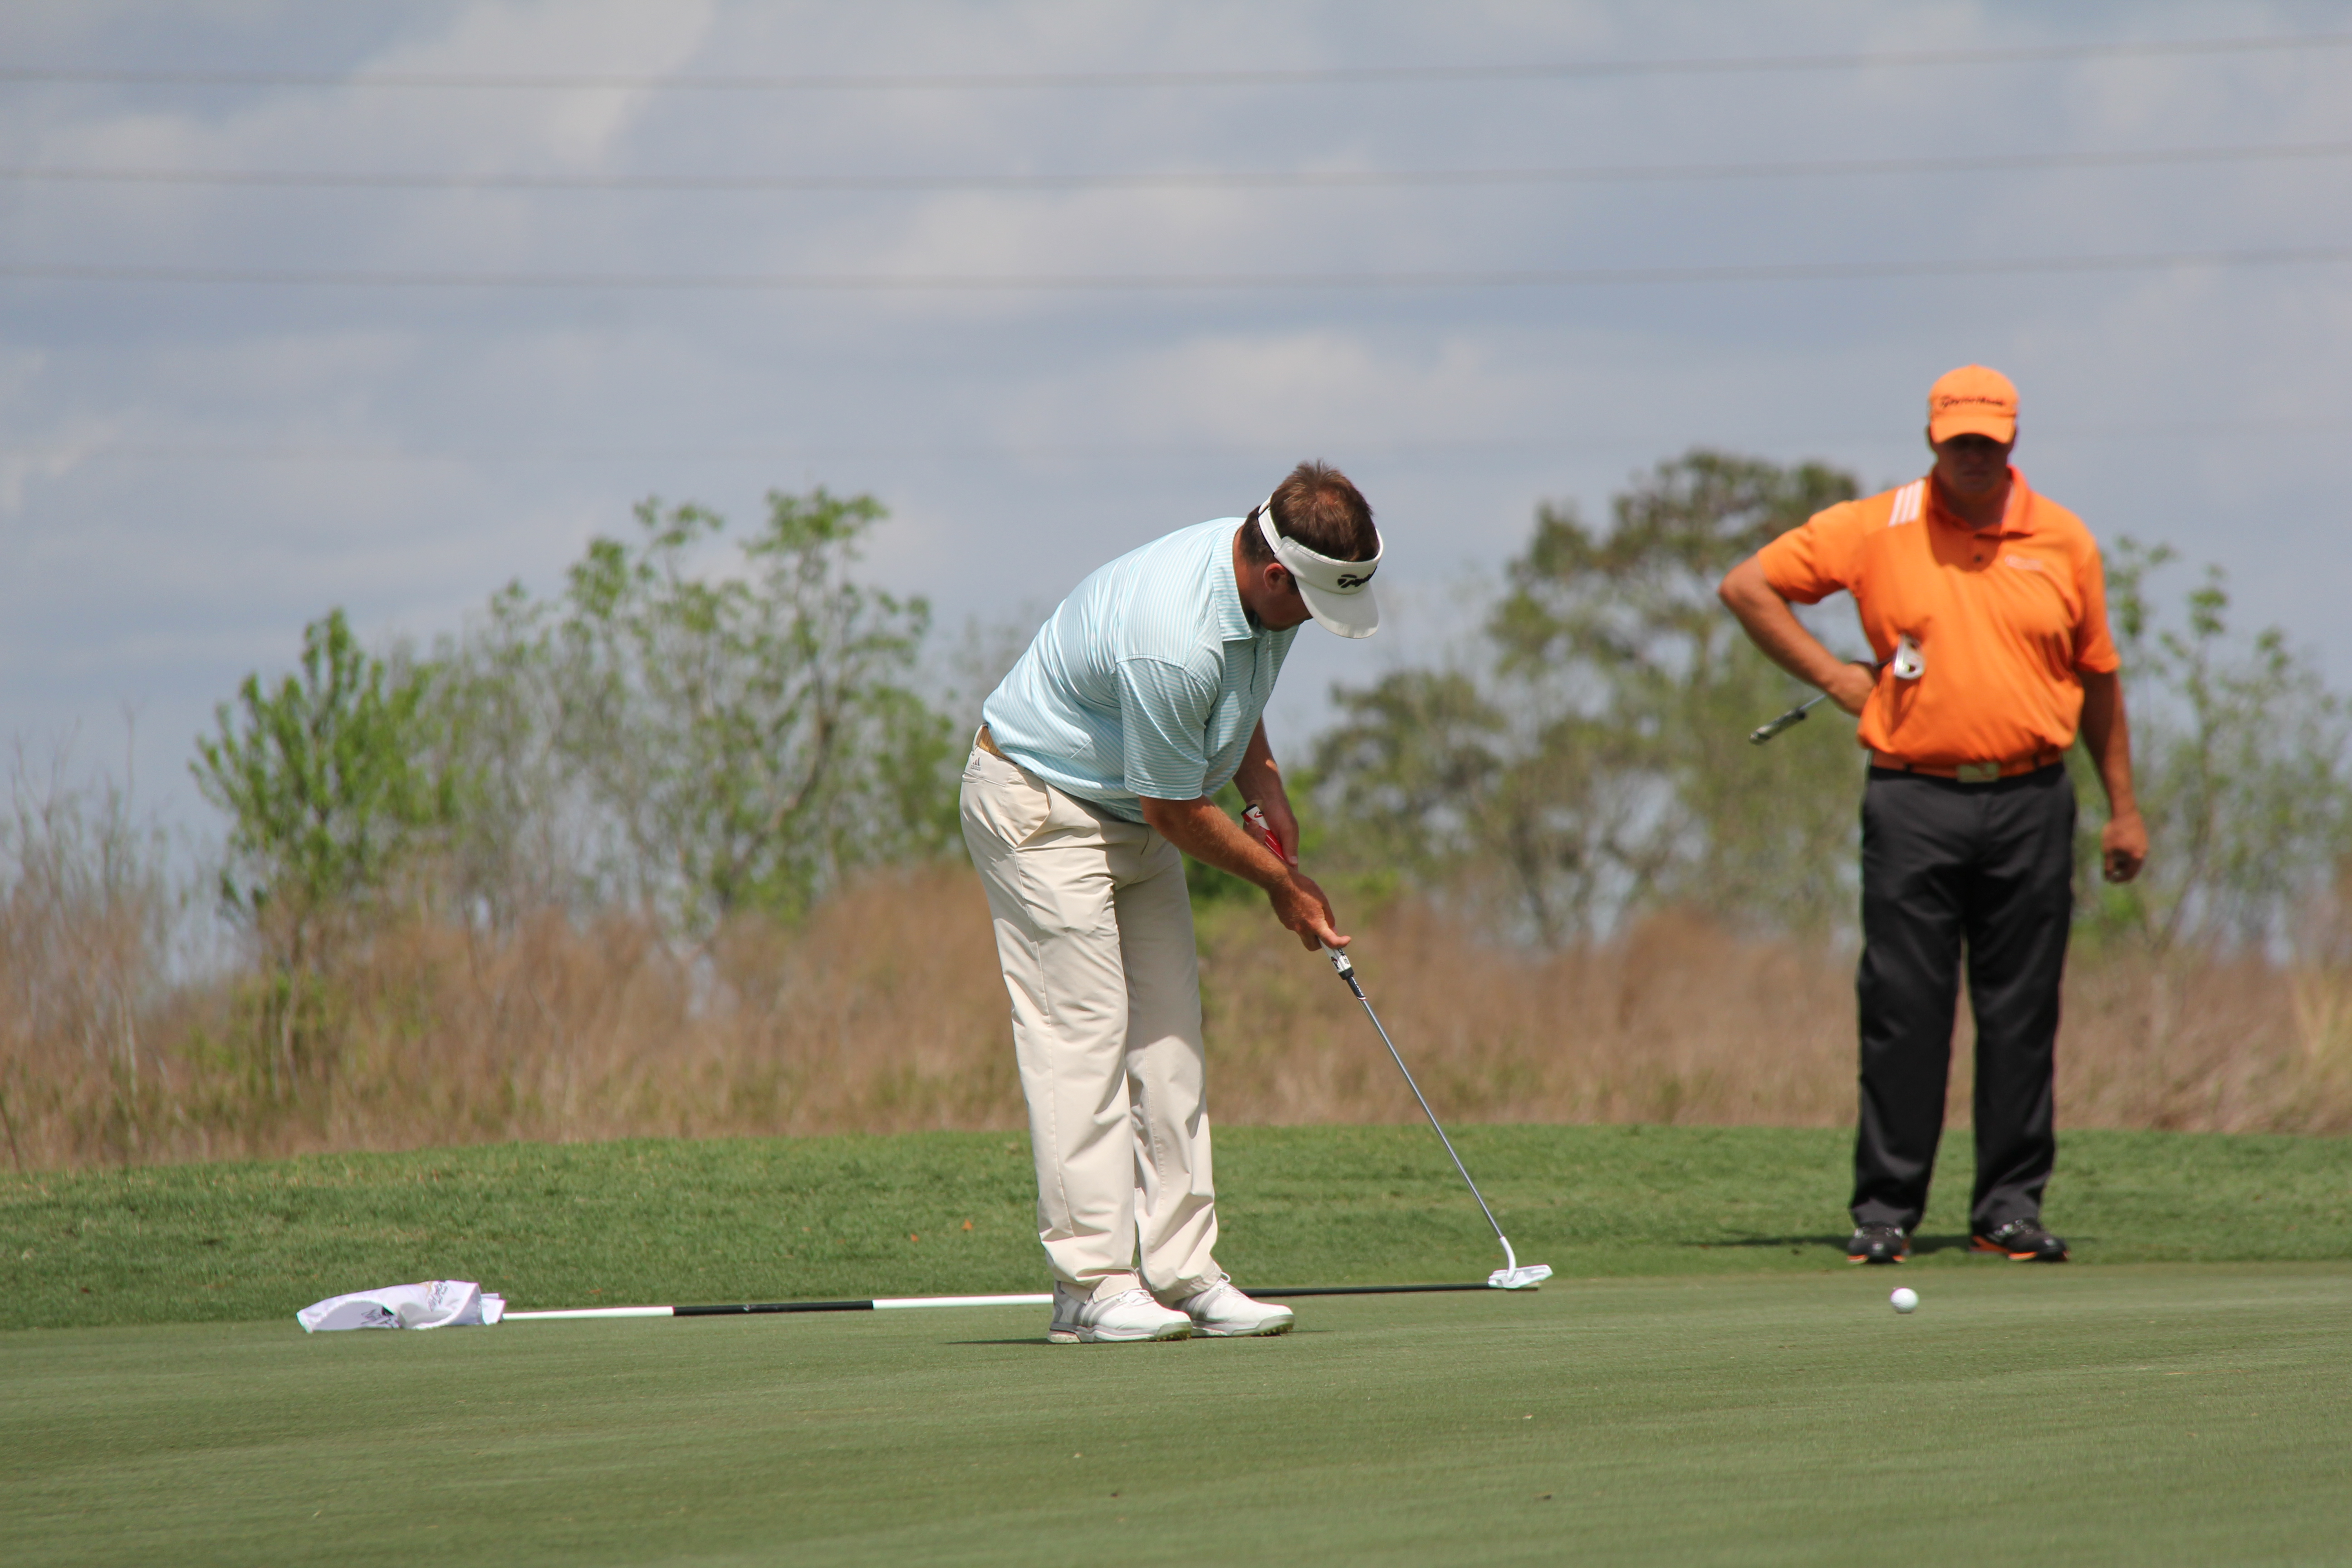 Putting during the Ocala Open